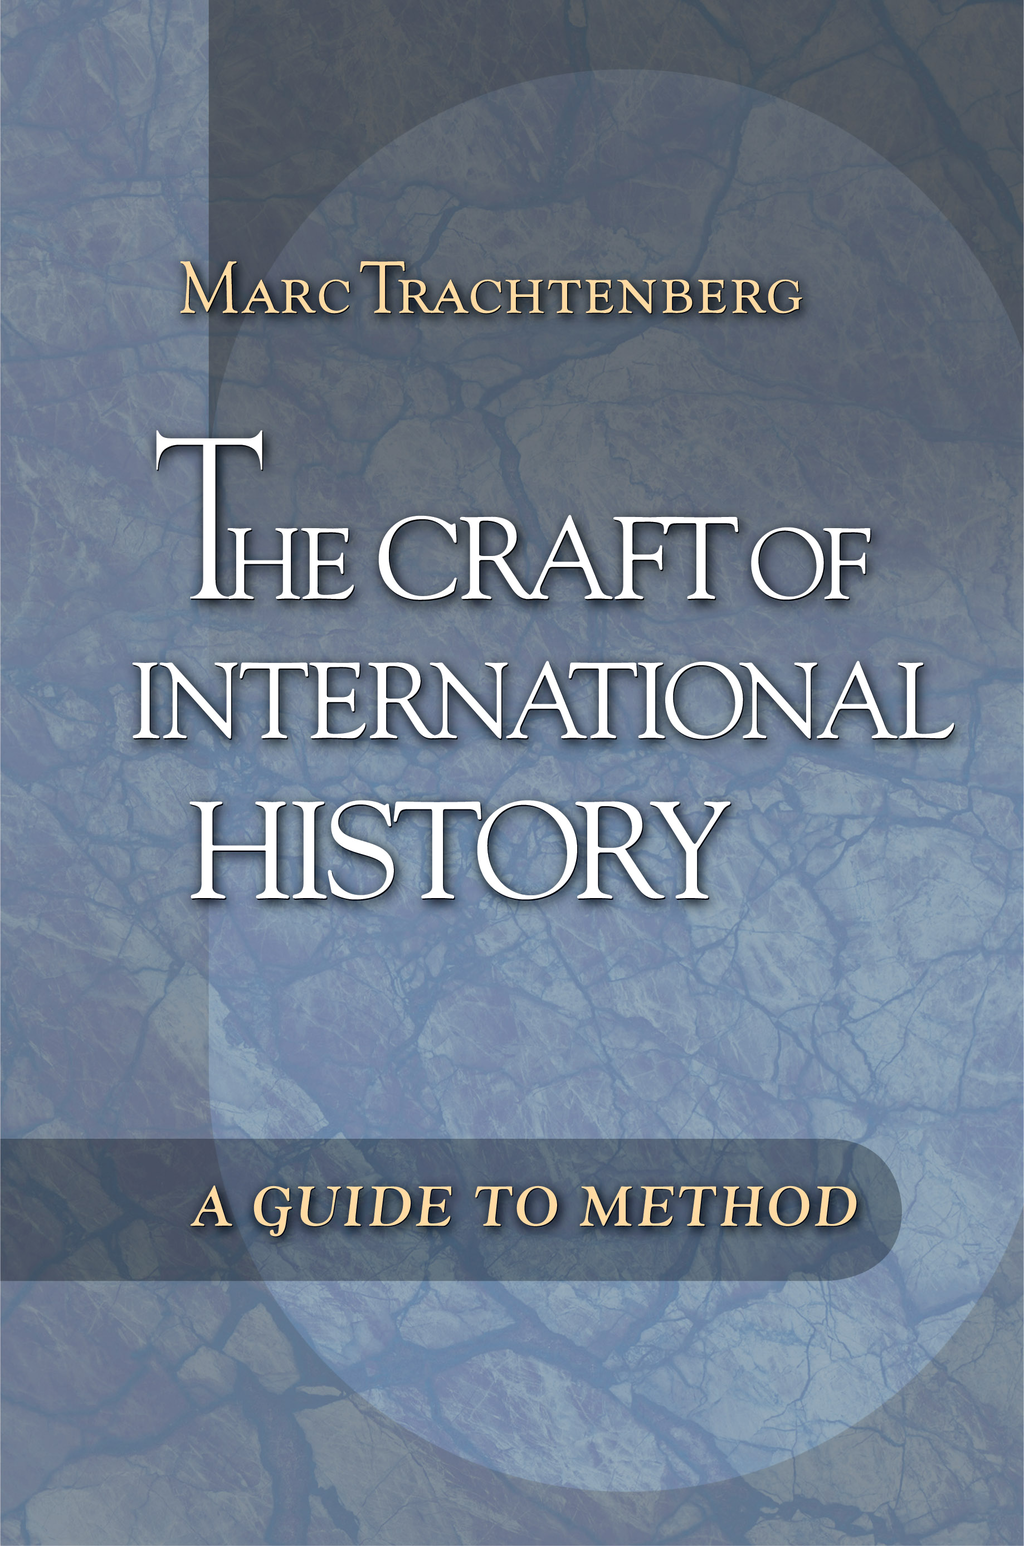 The Craft of International History A Guide to Method